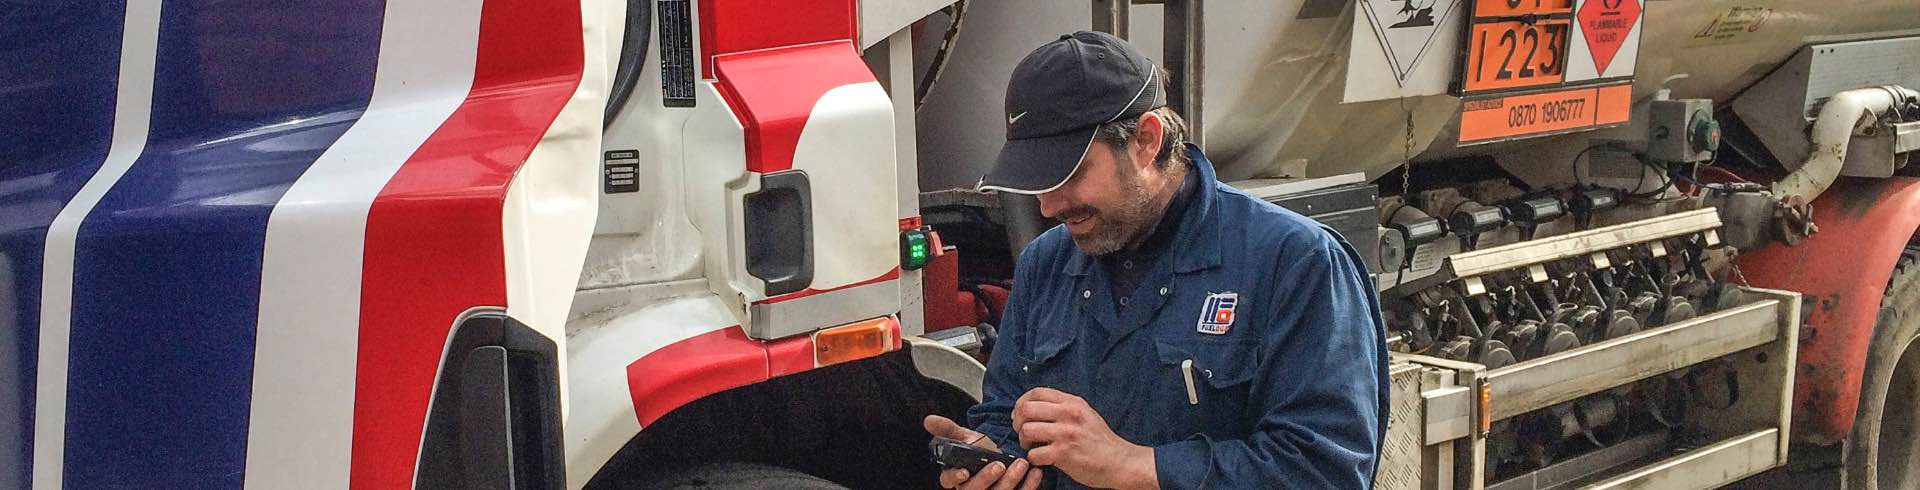 how it works. man with handheld device beside truck